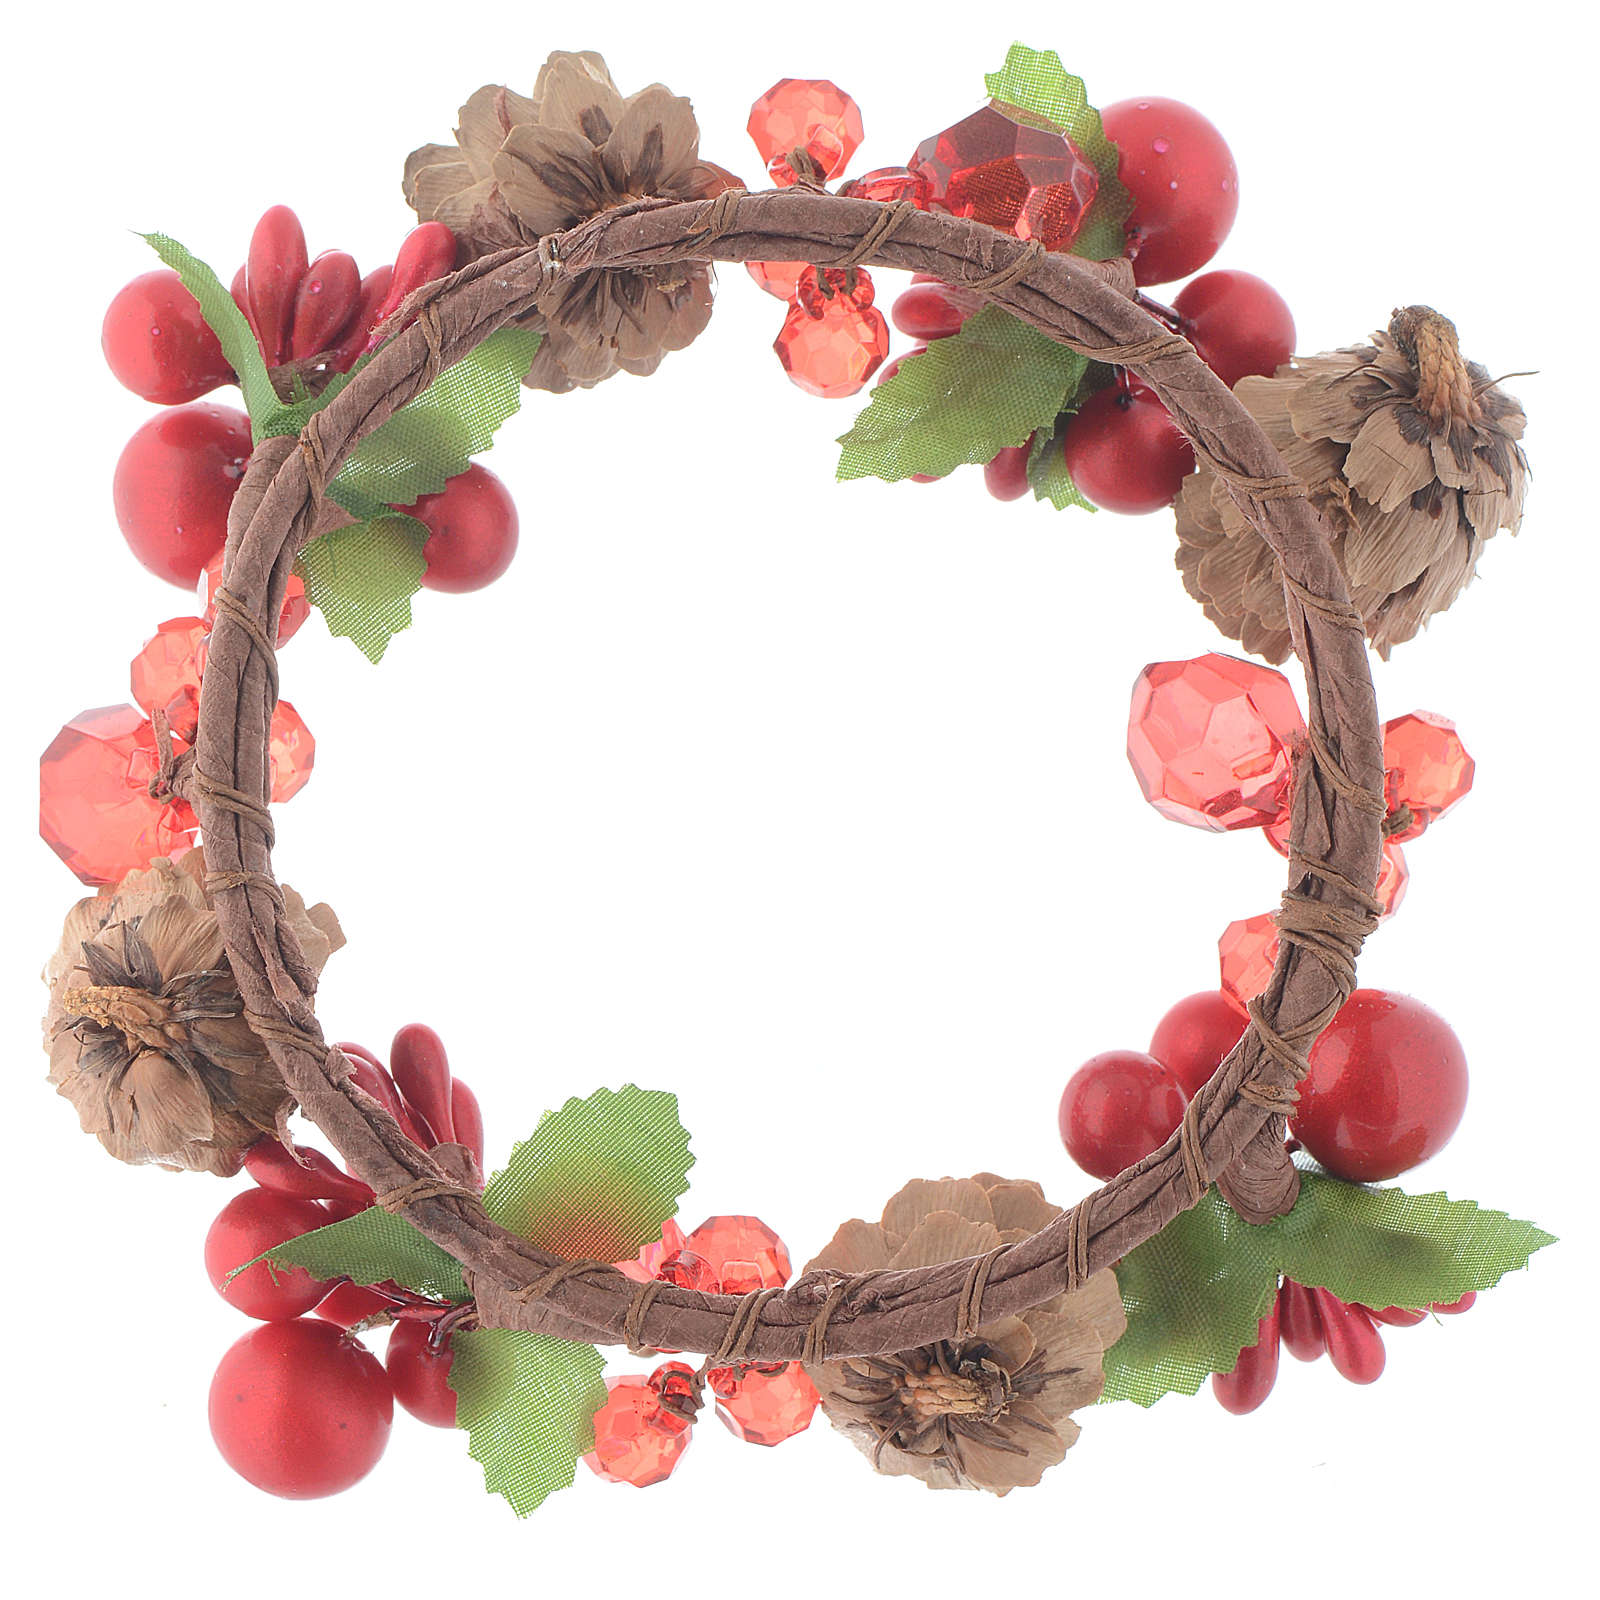 Christmas candle embellishment,red with berries and pine cones 8cm diameter 3